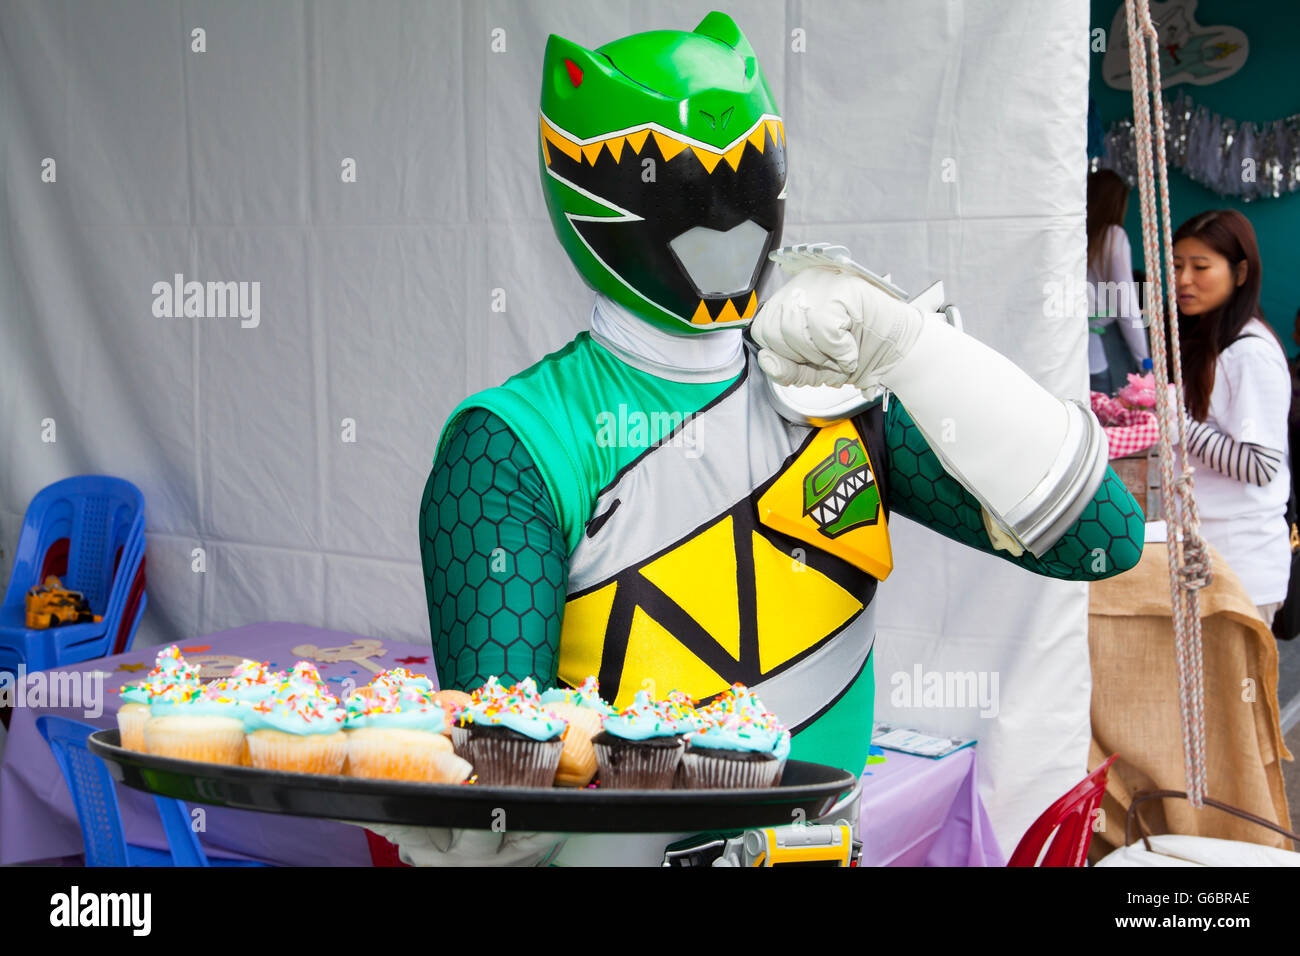 SANTA MONICA, CA - JUNE 11: The Green Ranger attends the Ovarian Cancer Research Fund Alliance's 3rd Annual - Stock Image